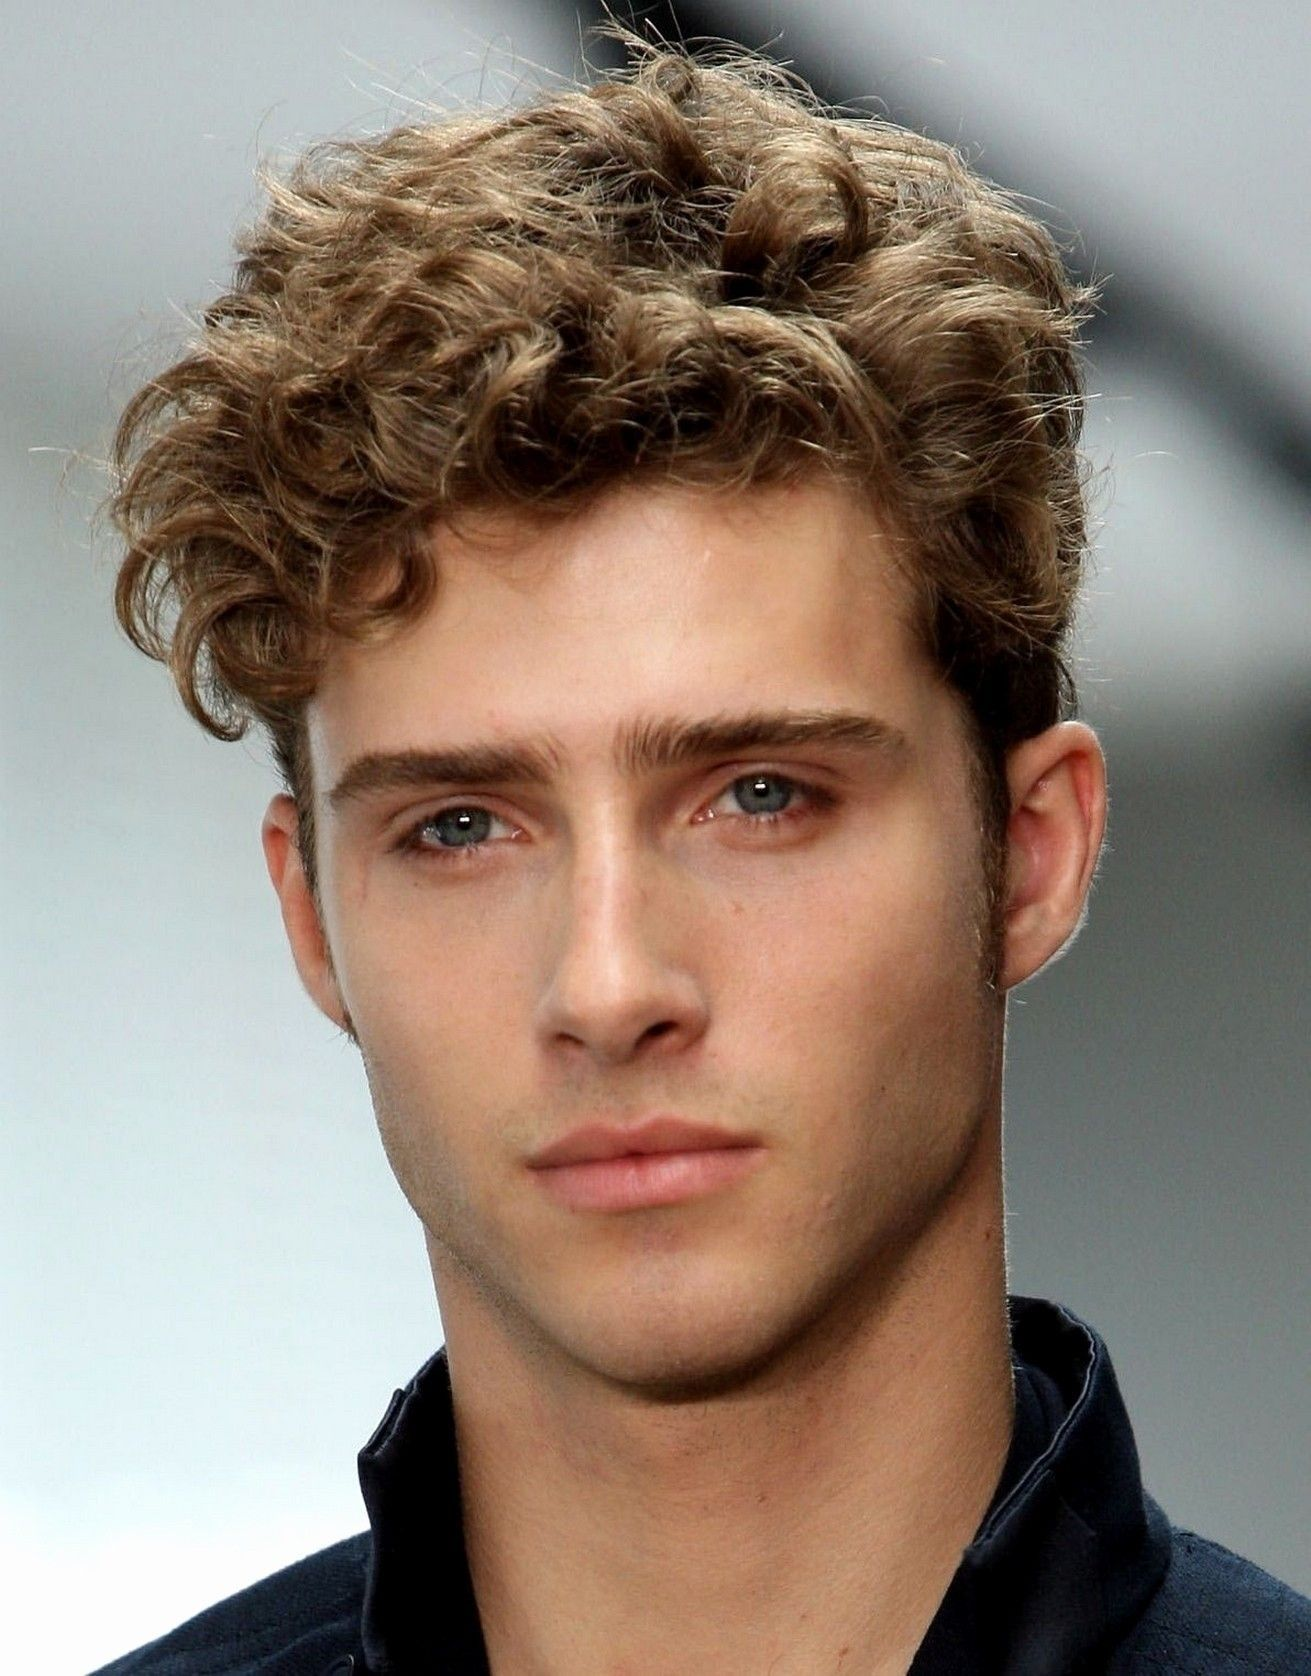 A Perfect Hairstyles for Men with Curly Hair and Round Faces